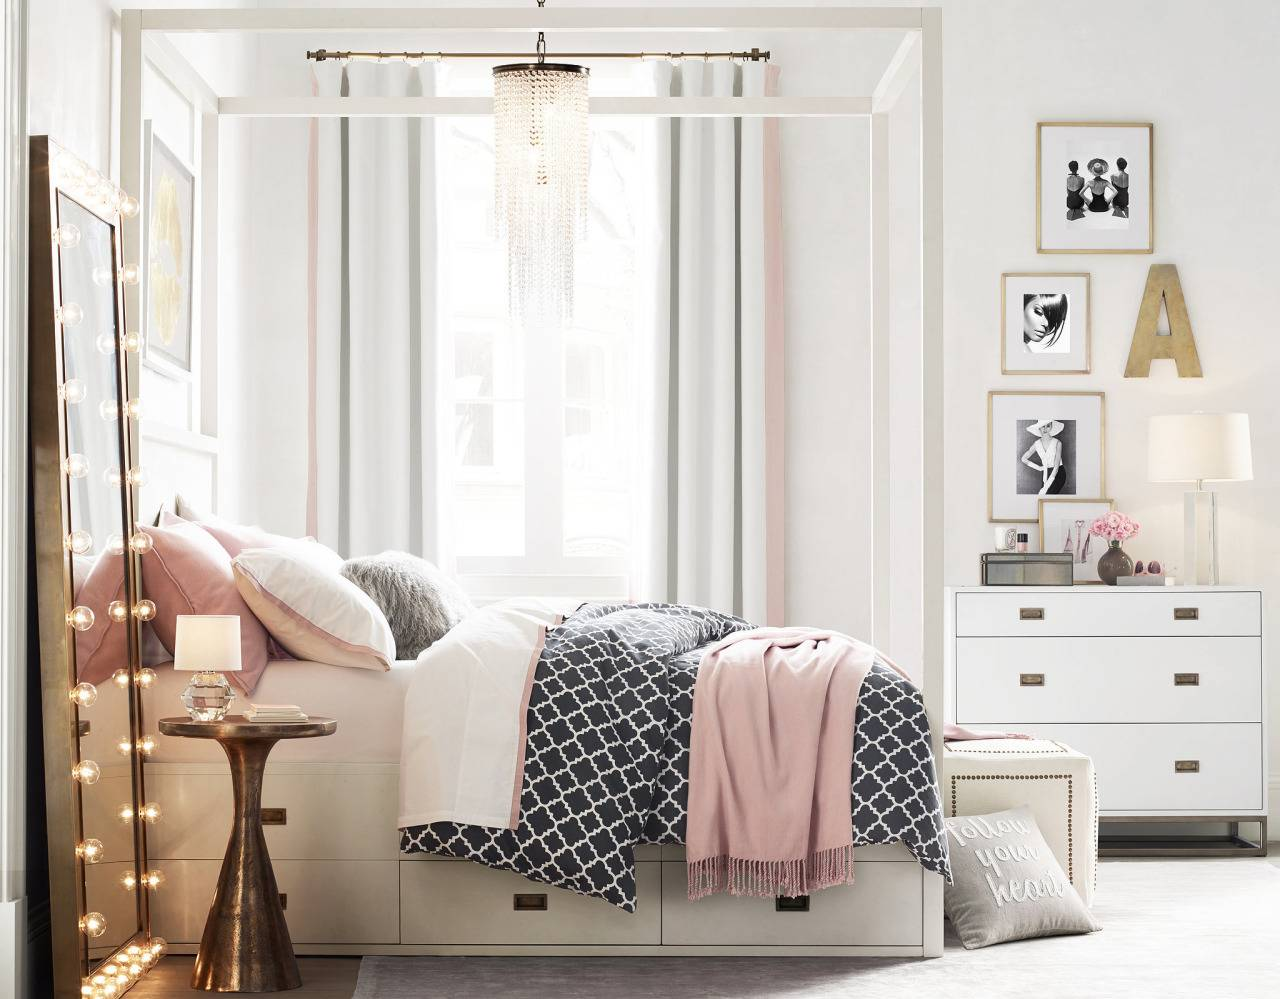 How to make your bedroom feel cozy sprinkles of style for Cute bedroom accessories